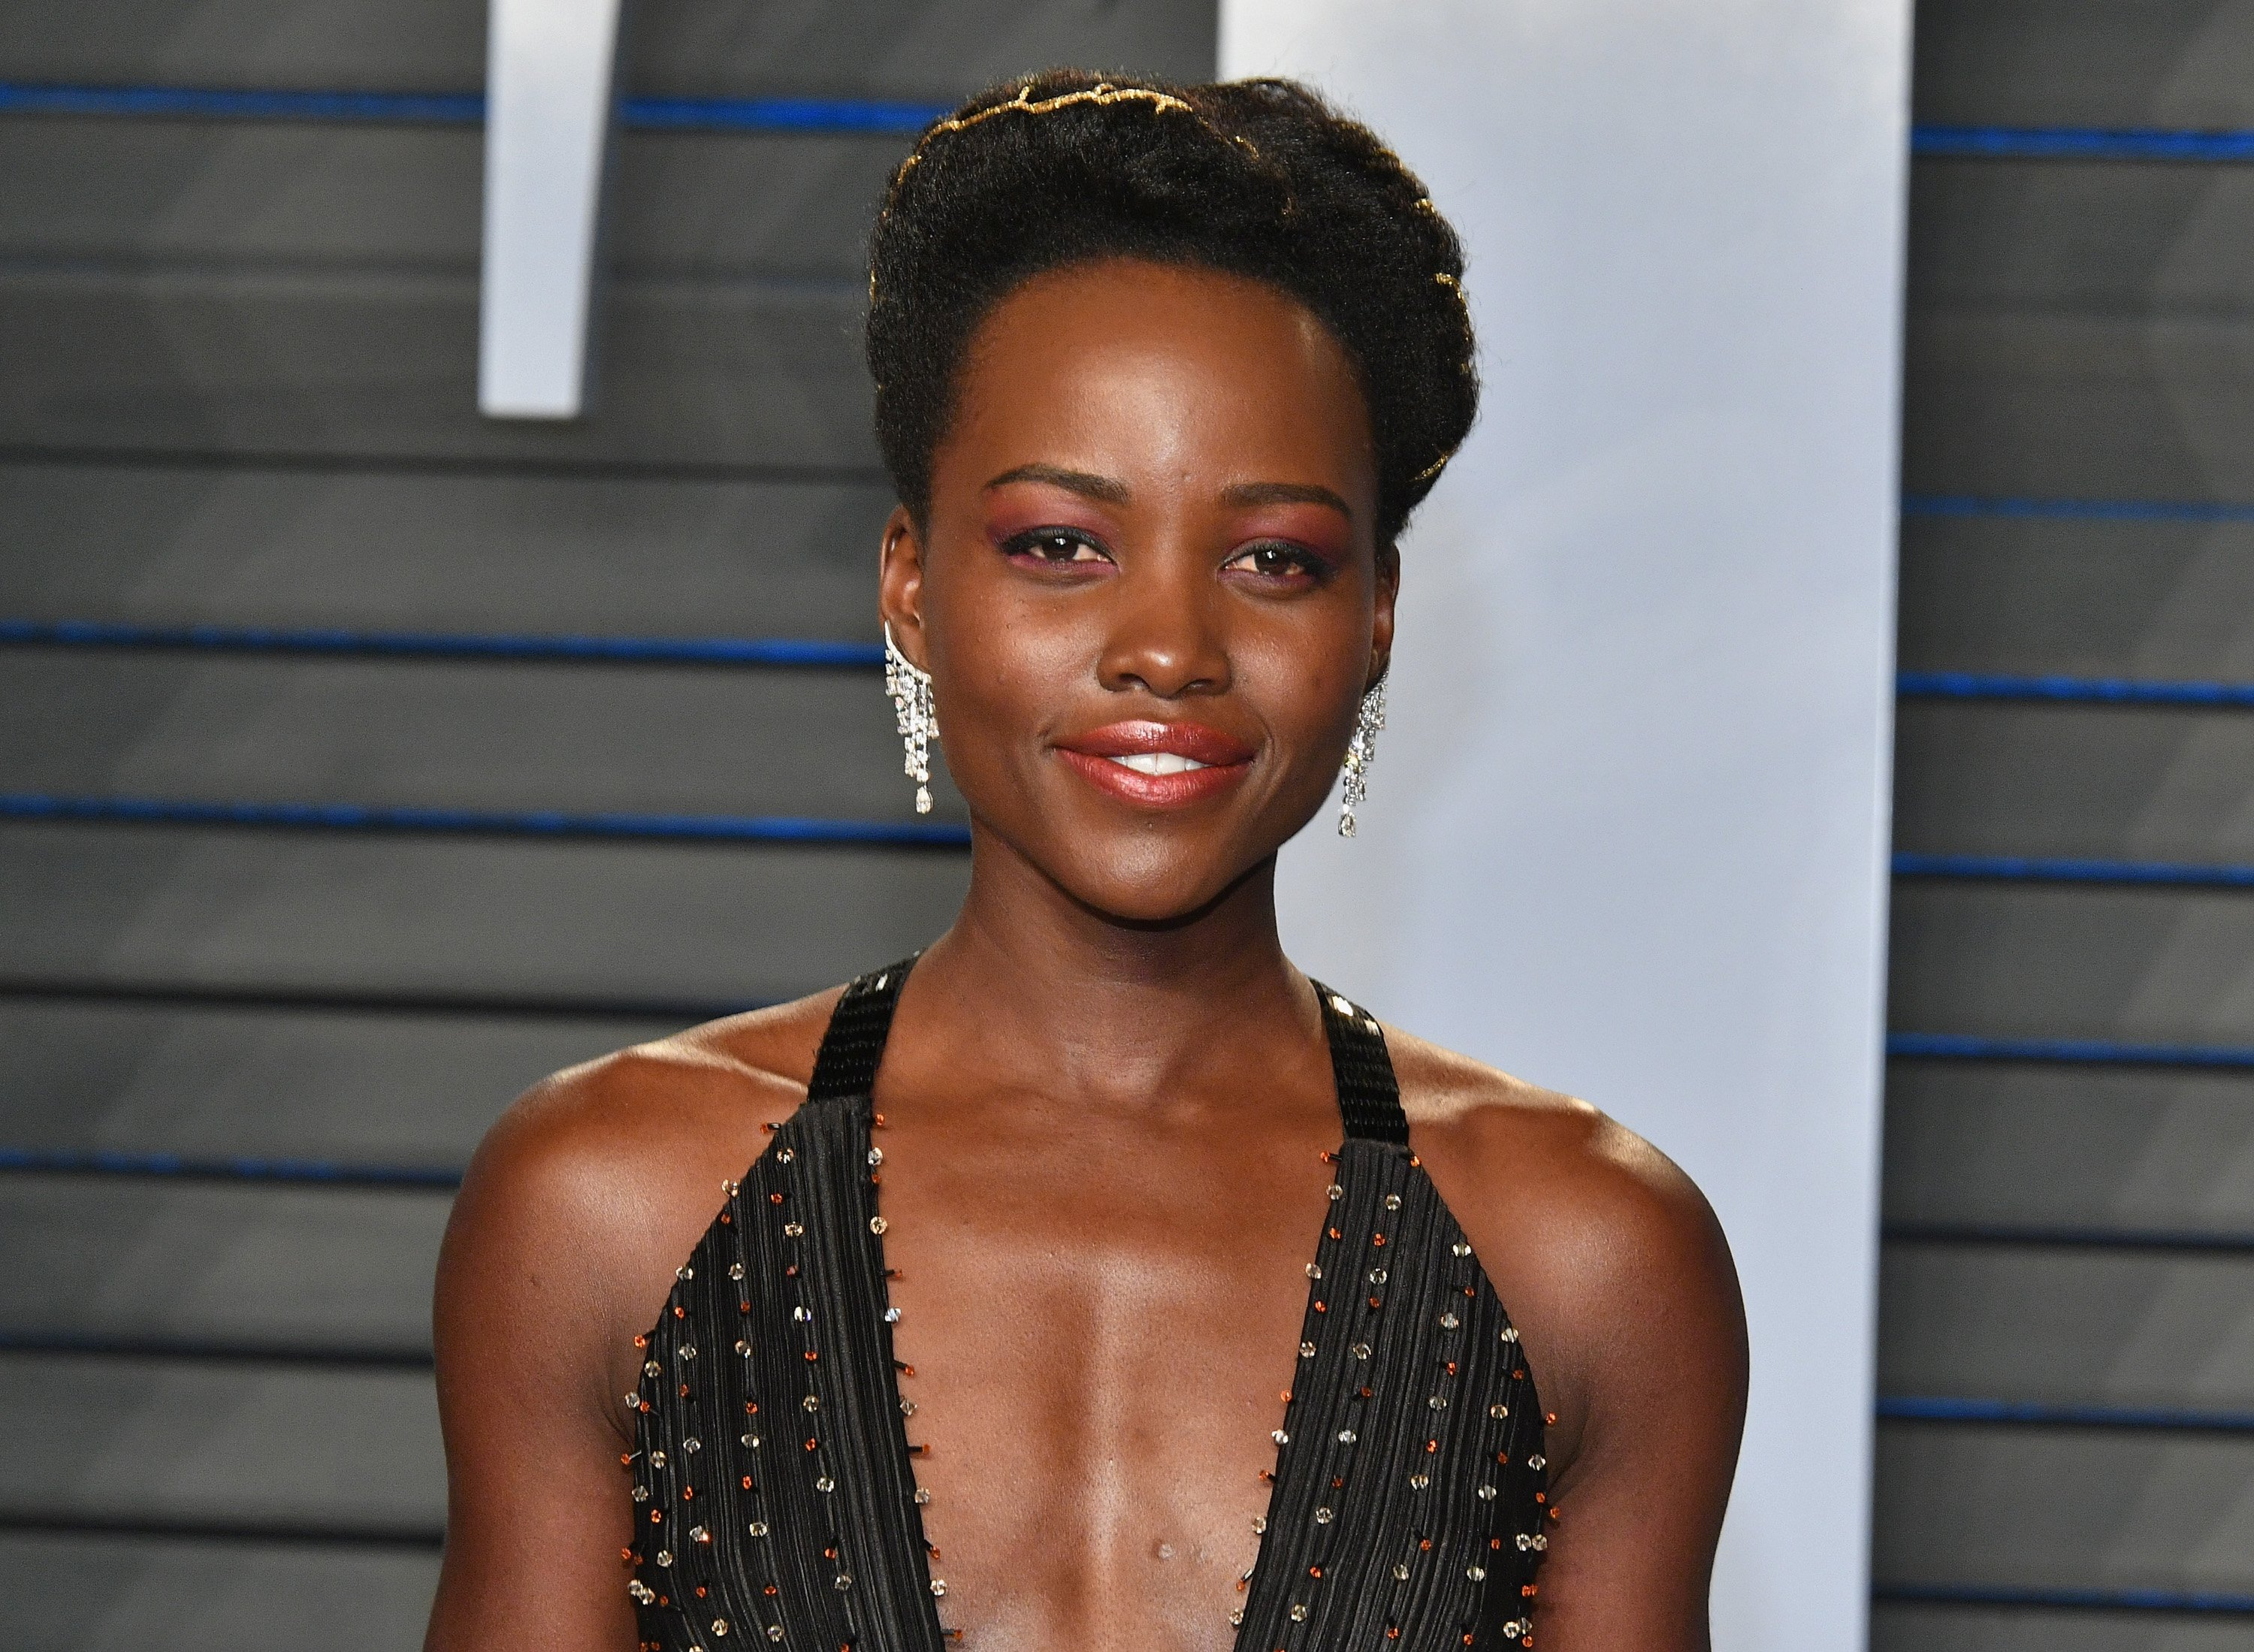 Lupita Nyong'o attends the Vanity Fair Oscar Party in Beverly Hills, California on March 4, 2018 | Photo: Getty Images